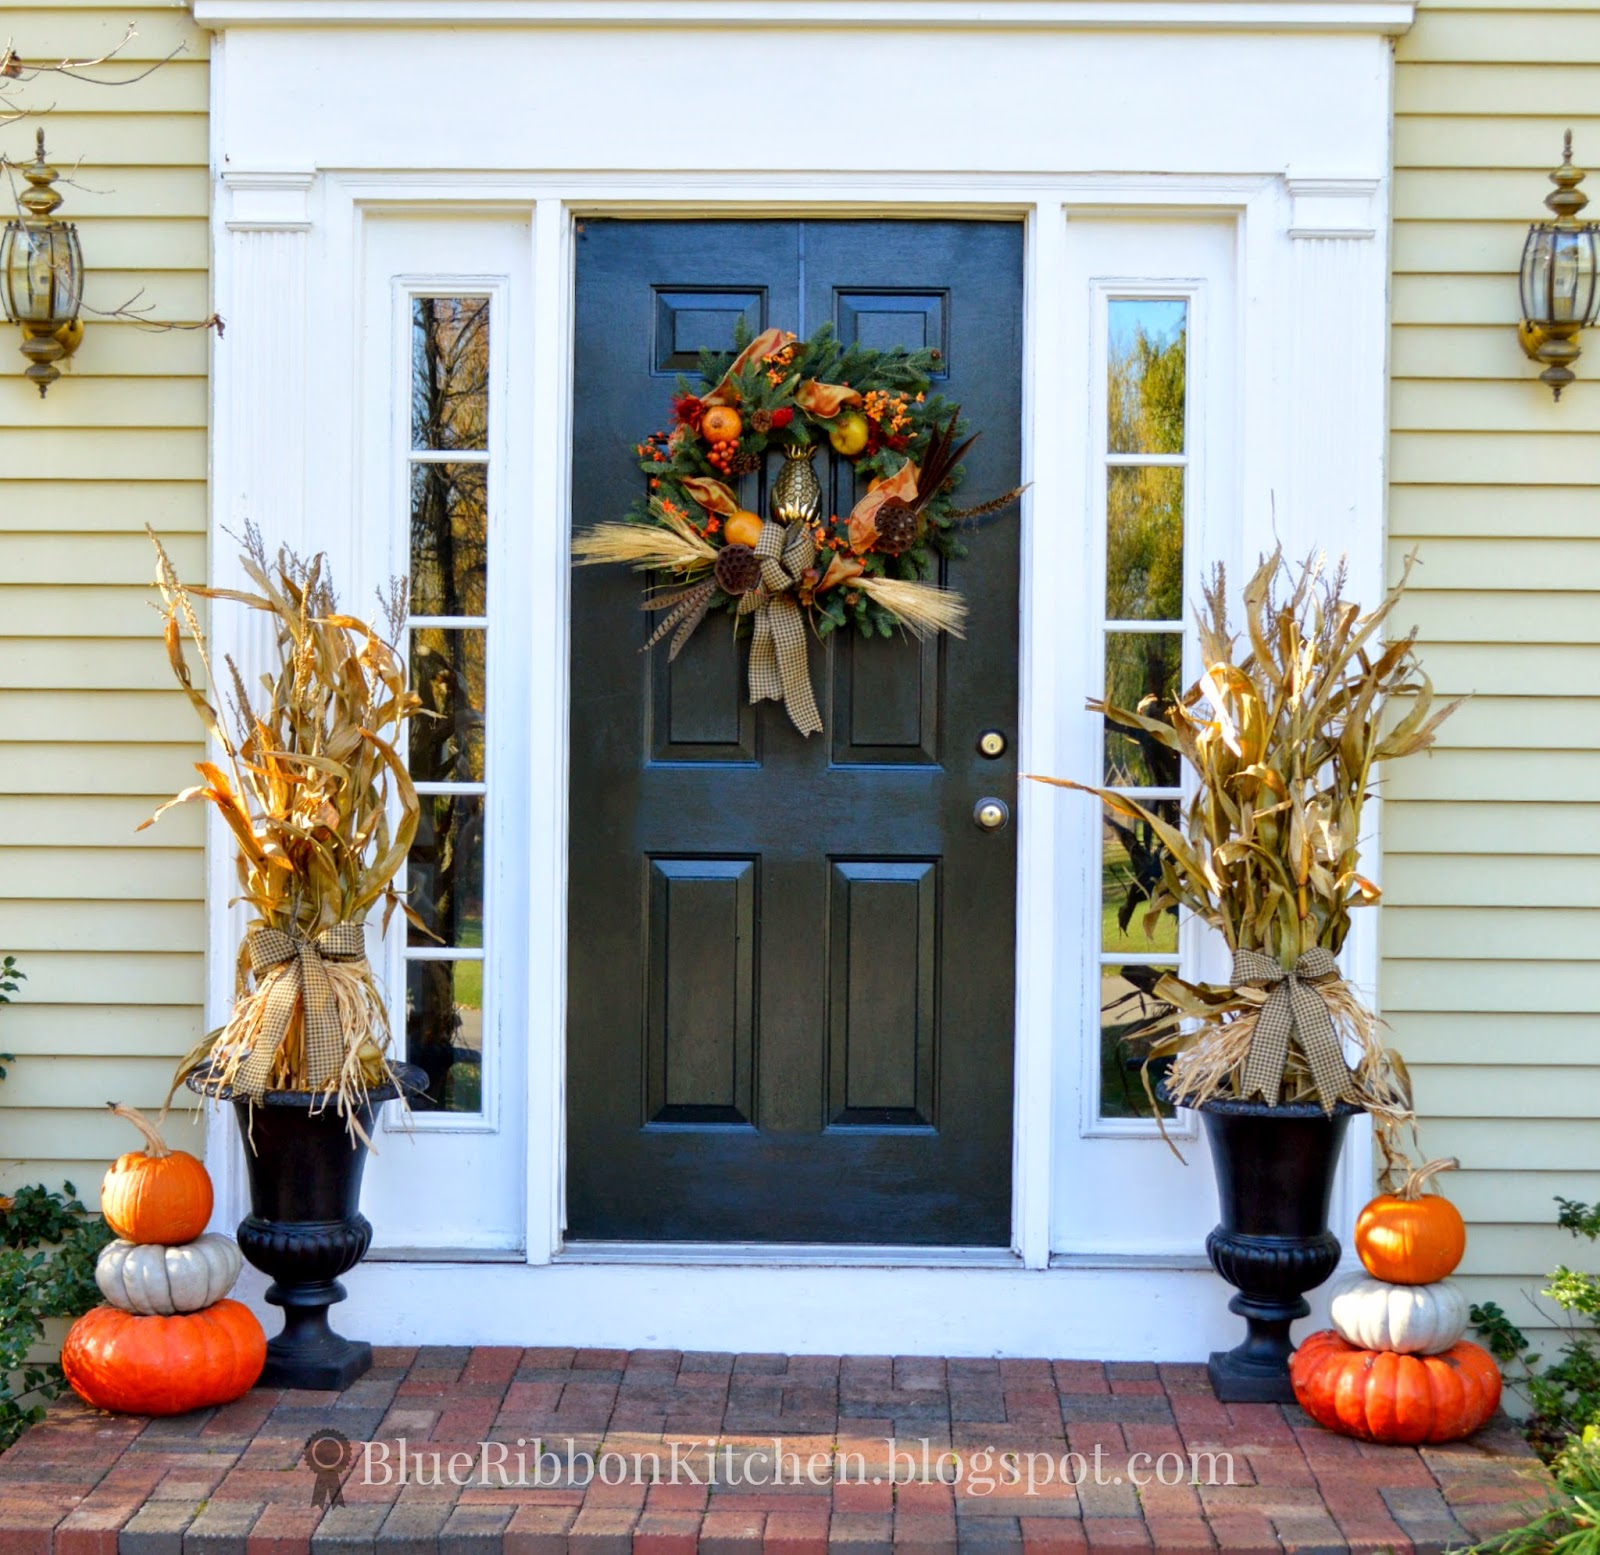 Thanksgiving front door decorations - Recycling Corn Stalks For A Harvest Door Welcoming Thanksgiving